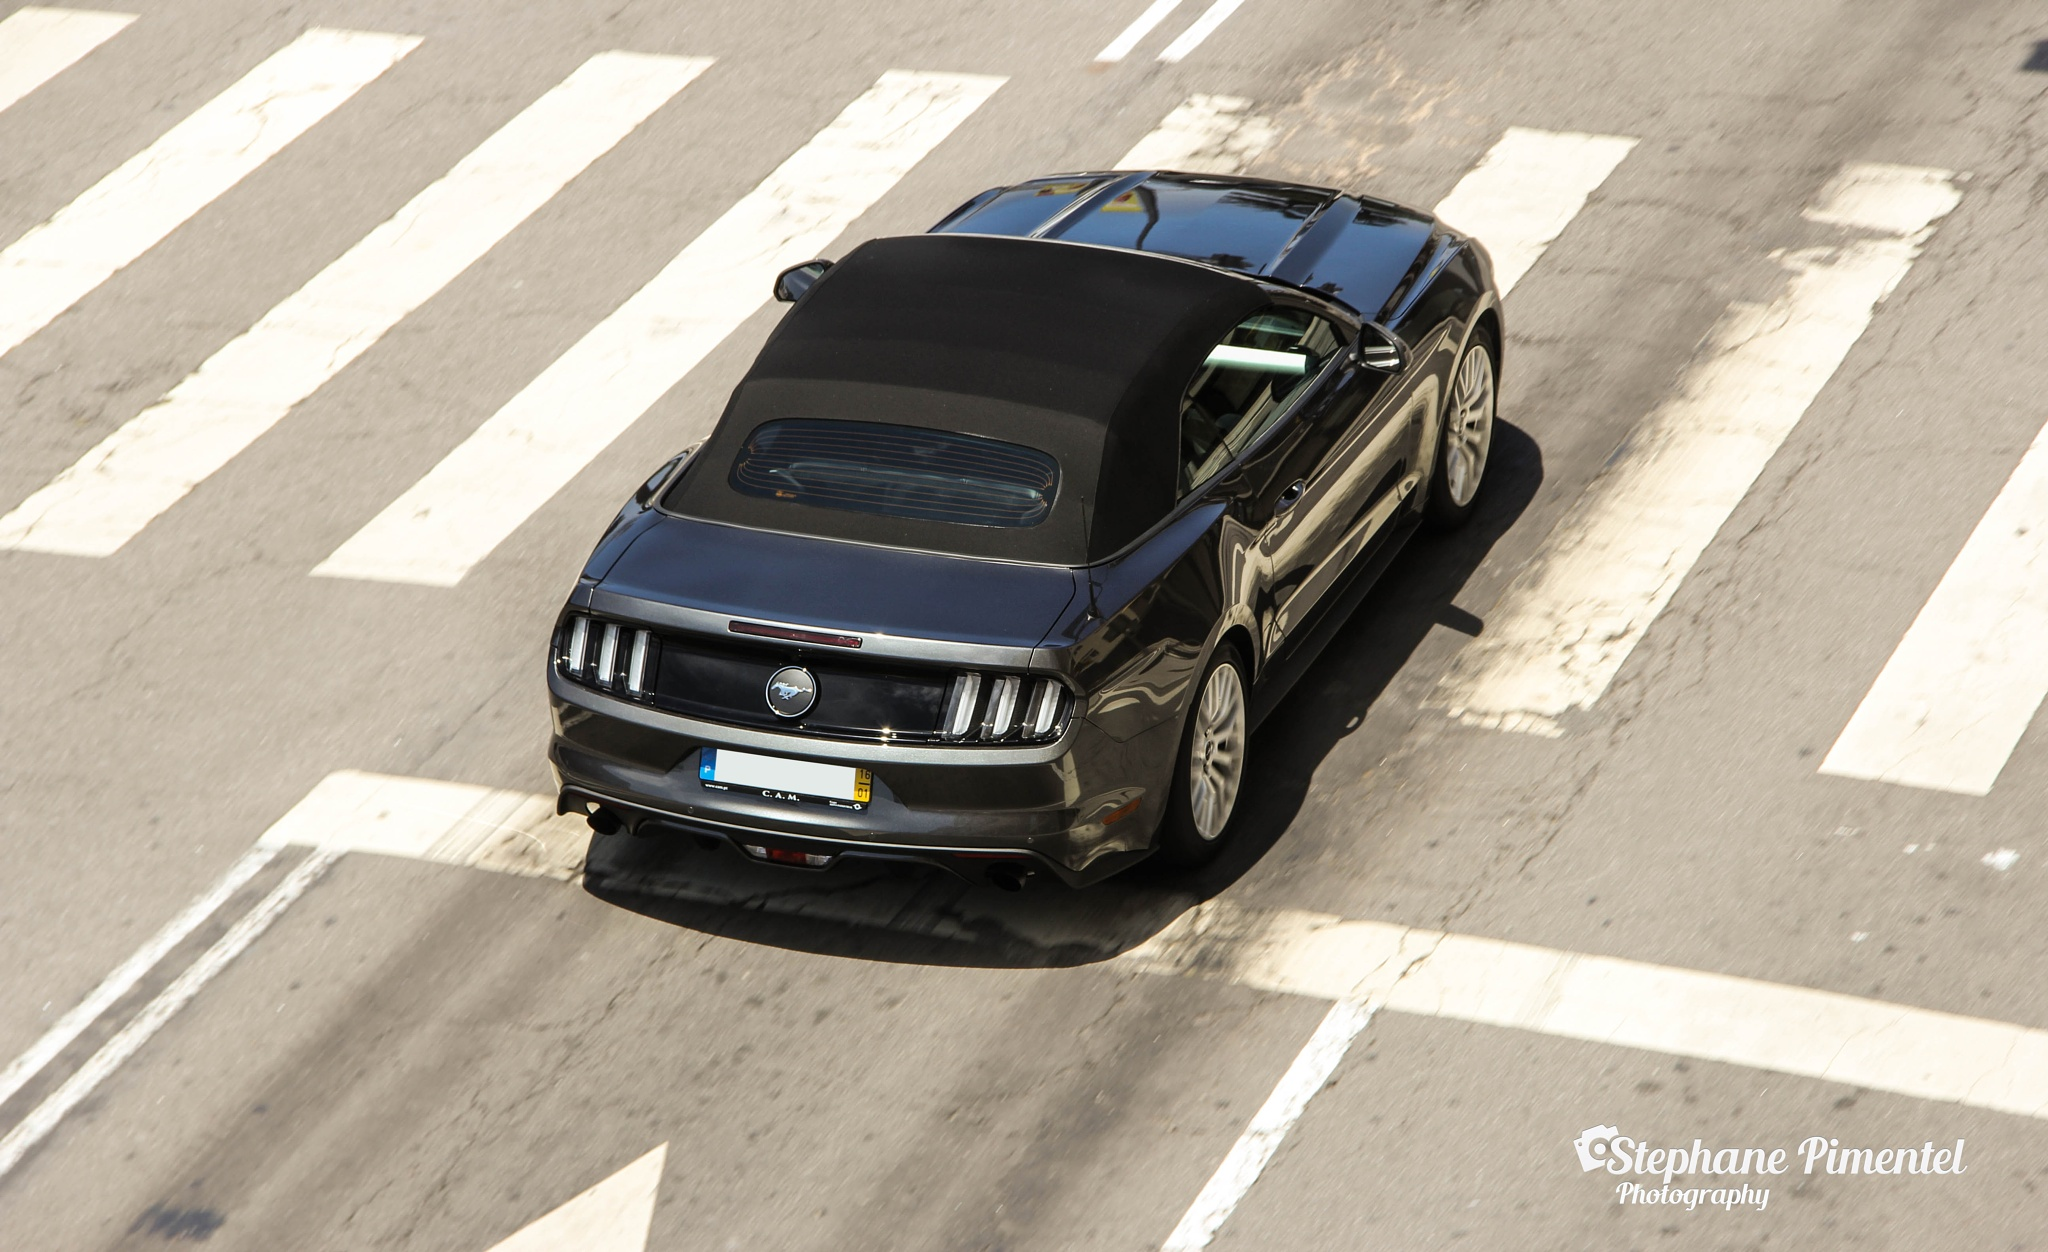 Ford mustang 2.3 ecoboost convertible by Stephane Pimentel Photography